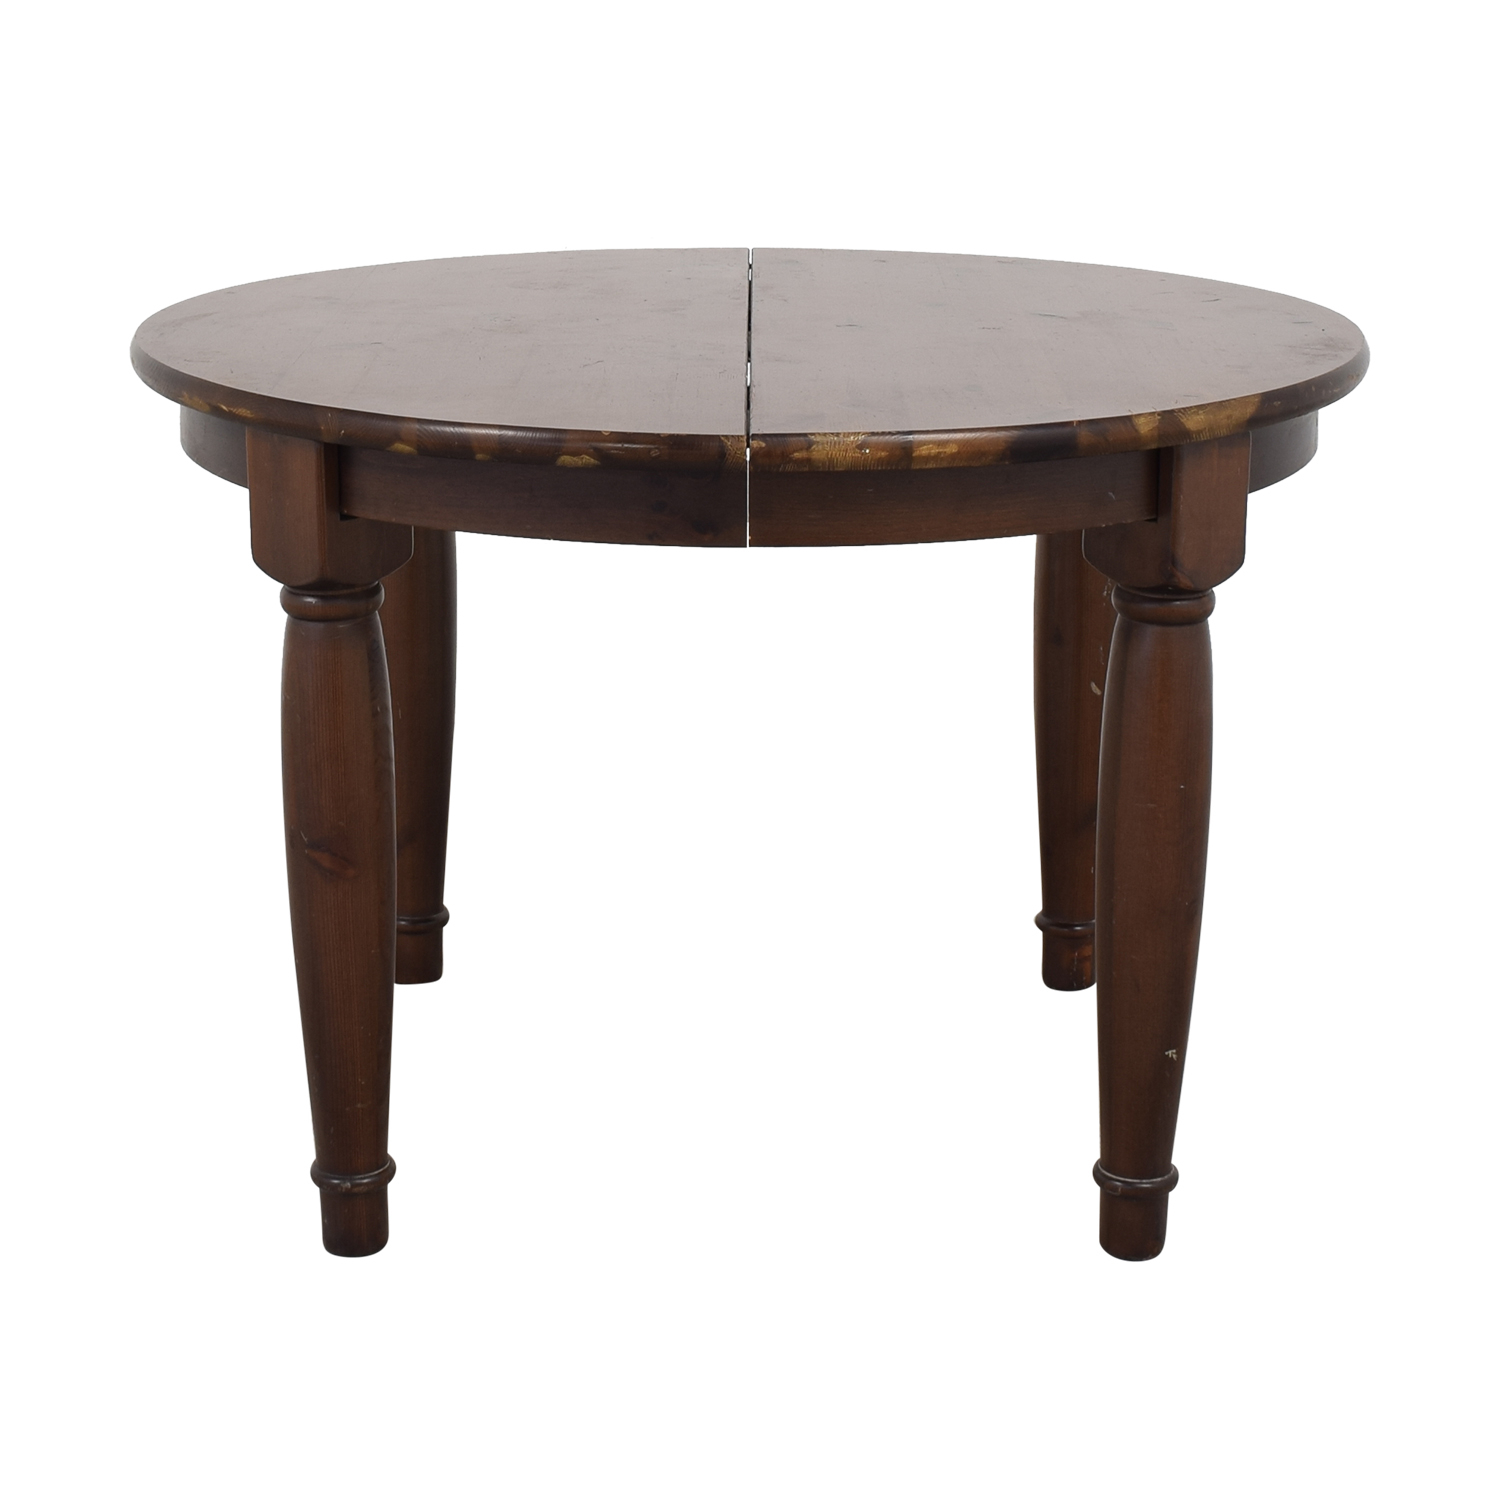 Pottery Barn Round Kitchen Table Intended For 2017 Seadrift Toscana Pedestal Extending Dining Tables (View 10 of 25)